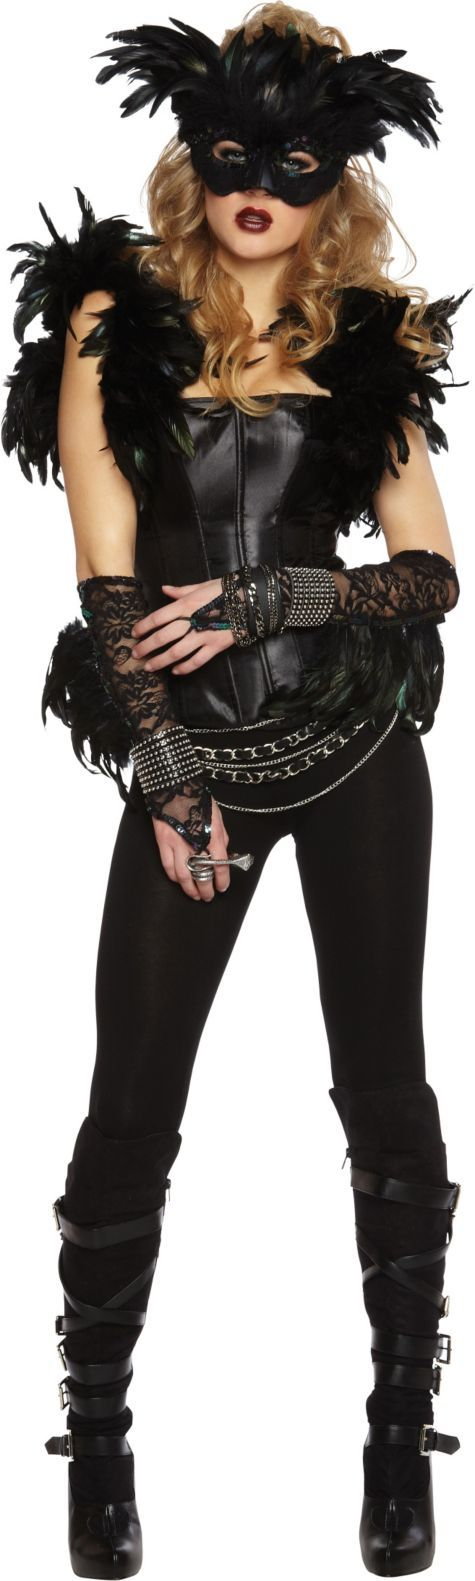 Adult Fantasy Raven Costume - Party City